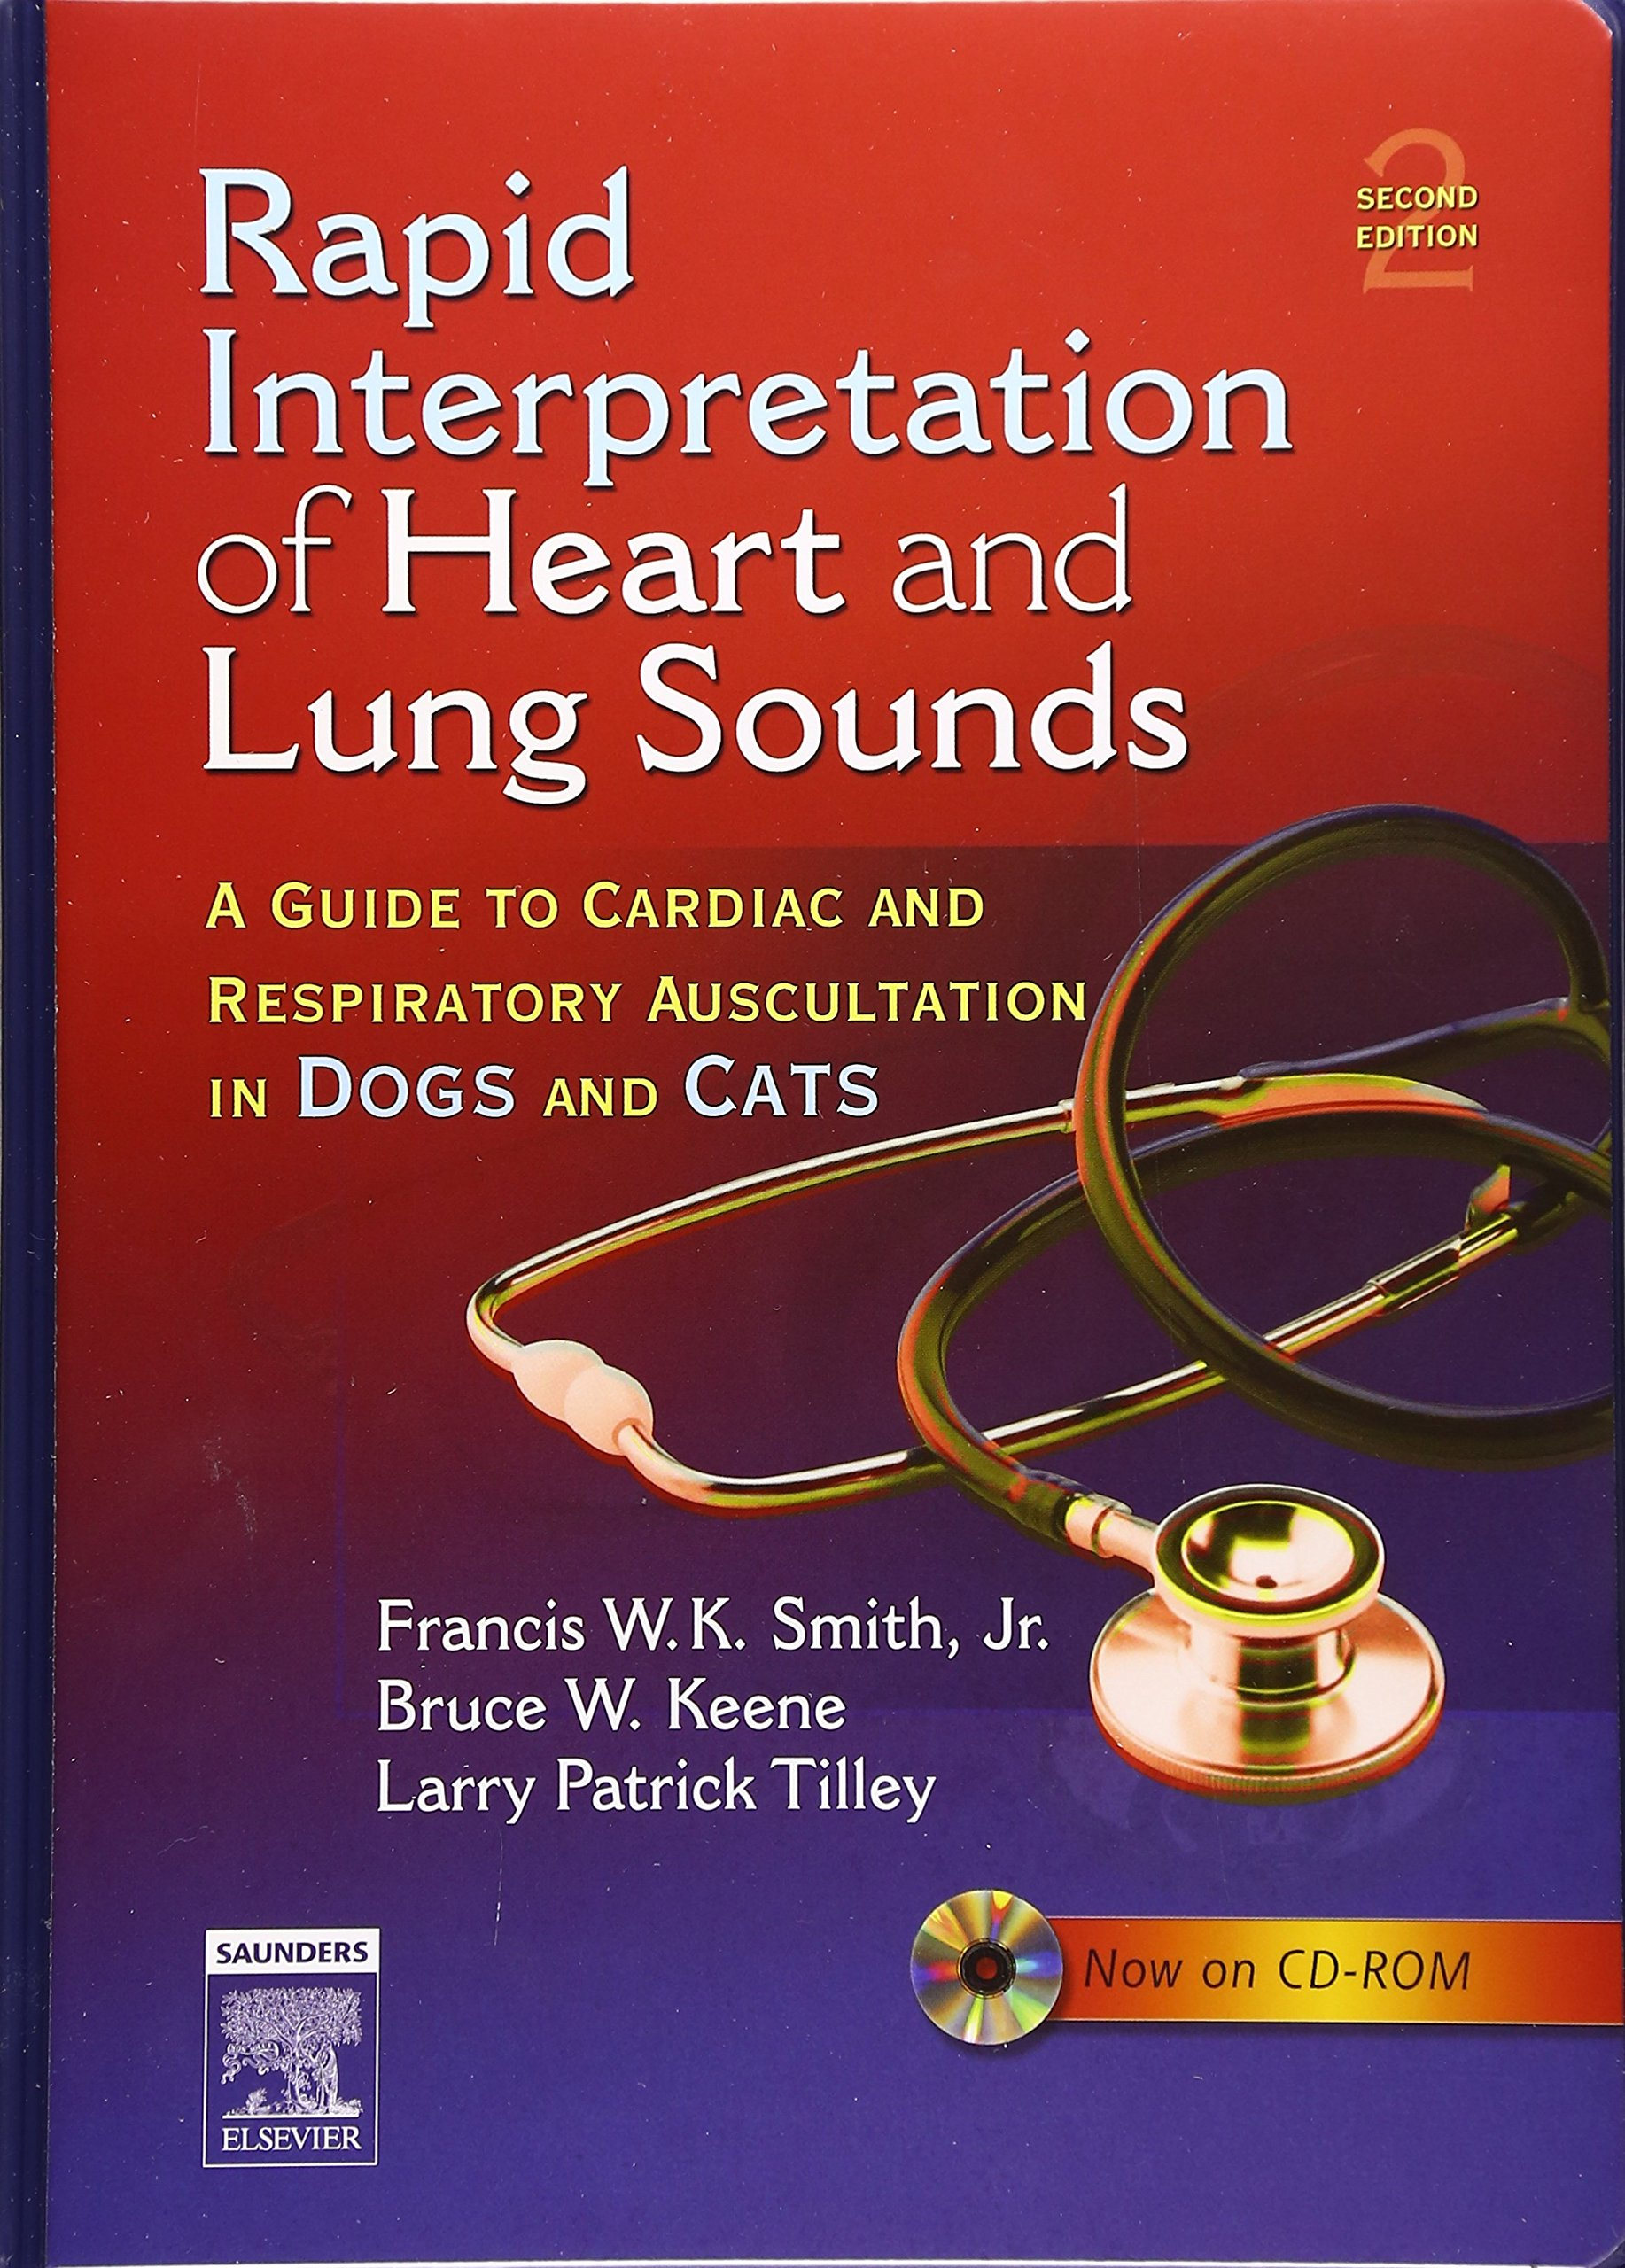 Rapid Interpretation of Heart and Lung Sounds: A